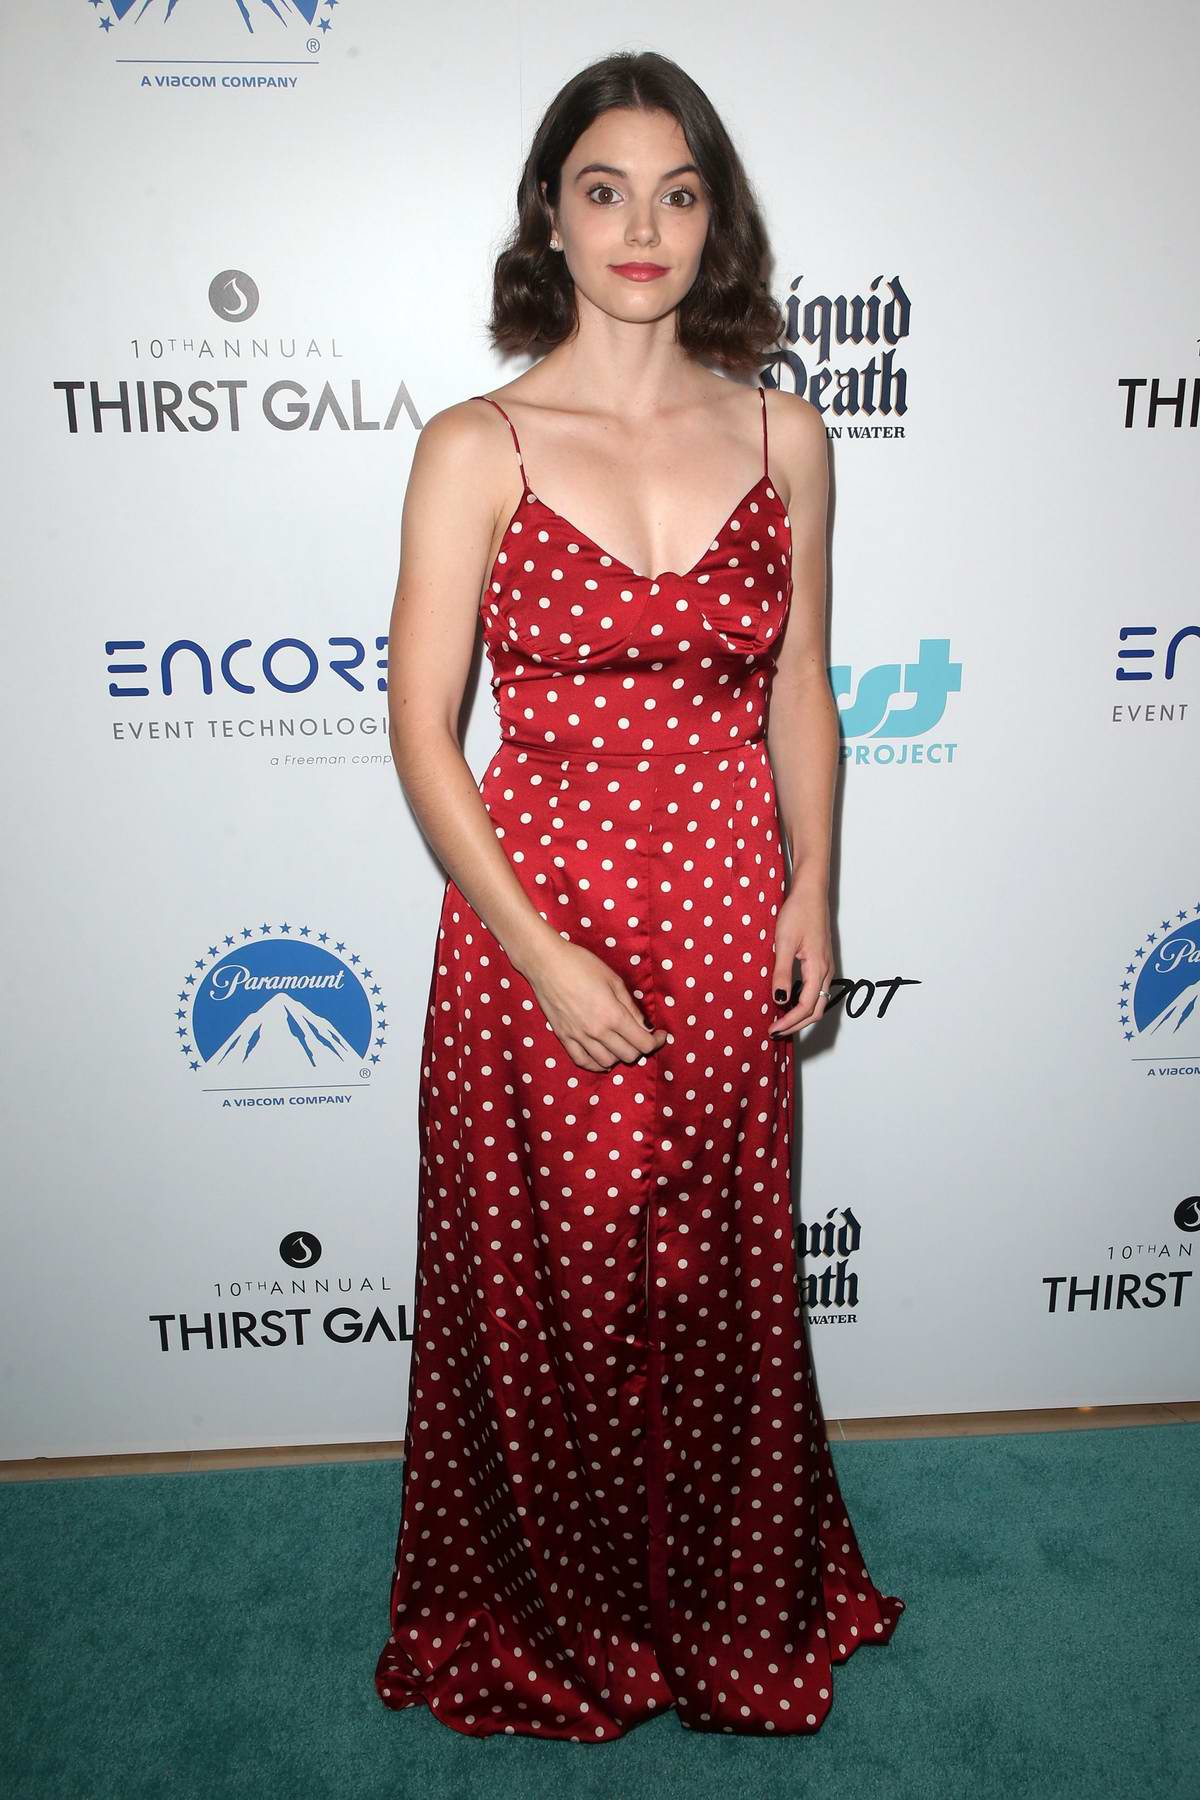 Francesca Reale attends the Thirst Project's 10th Annual Thirst Gala in Los Angeles